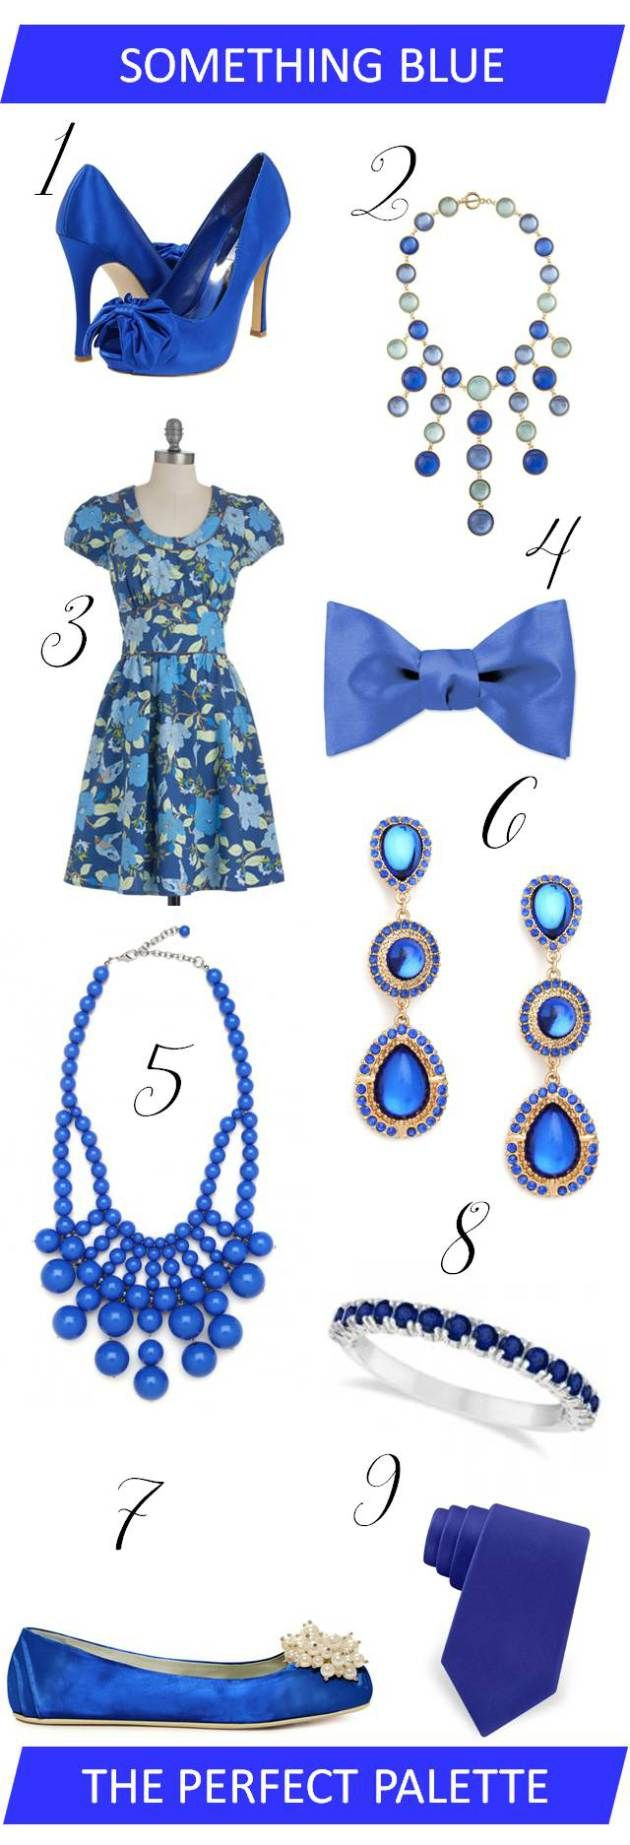 Style Inspiration - Something Blue: The Perfect Palette